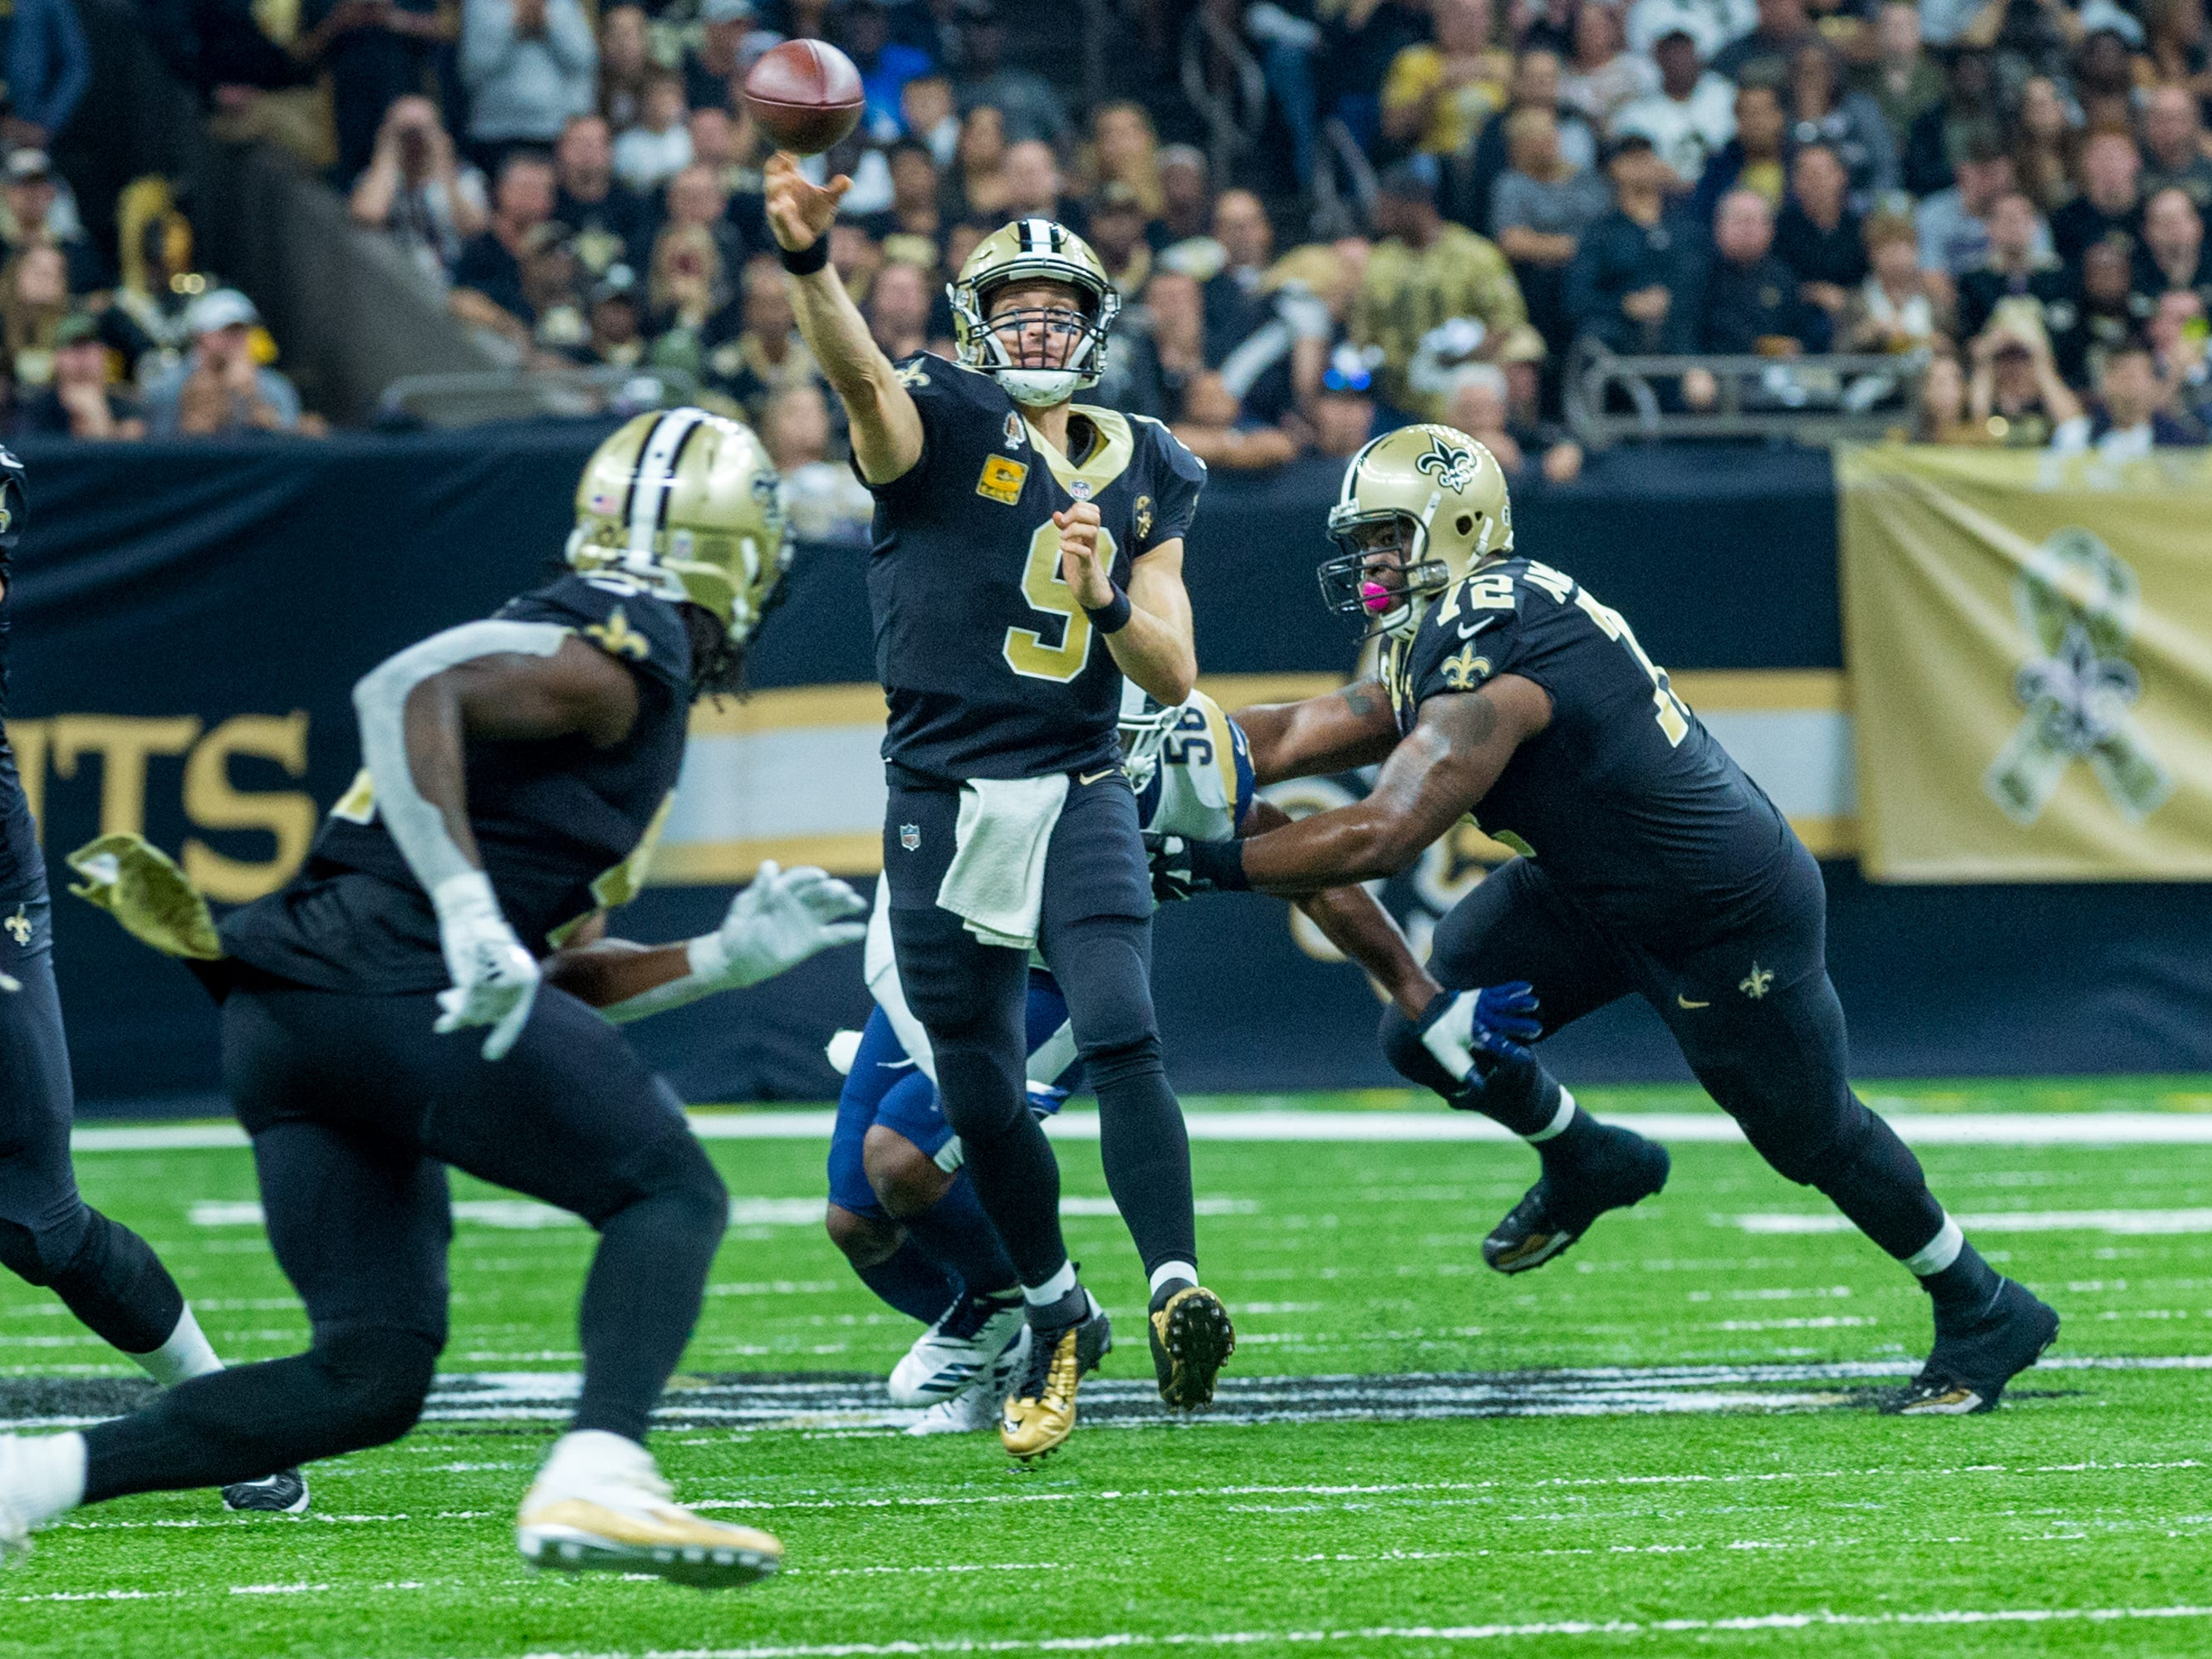 Saints quarterback Drew Brees throws a pass during the NFL football game between the New Orleans Saints and the Los Angeles Rams on Sunday, Nov. 4, 2018.